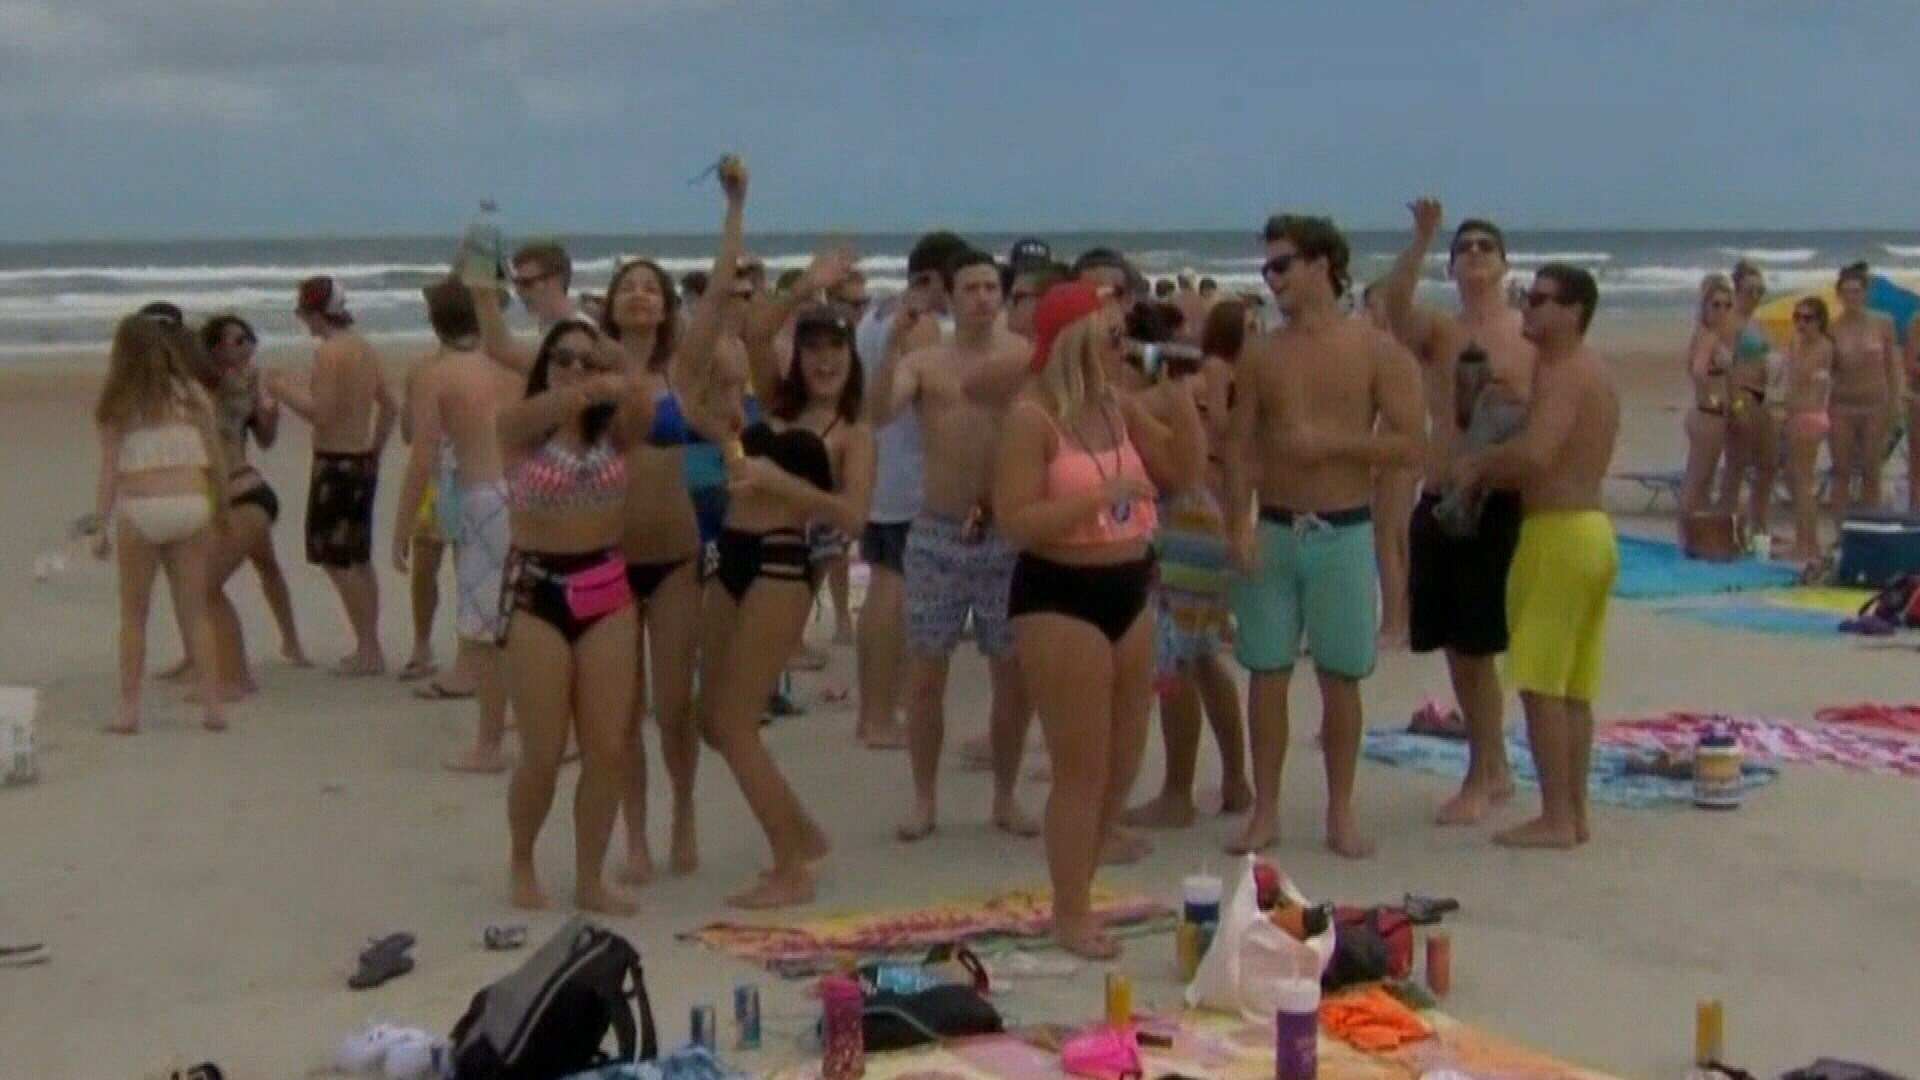 Police will also have extra patrols on Padre Island and remind there are certain rules in place during spring break.